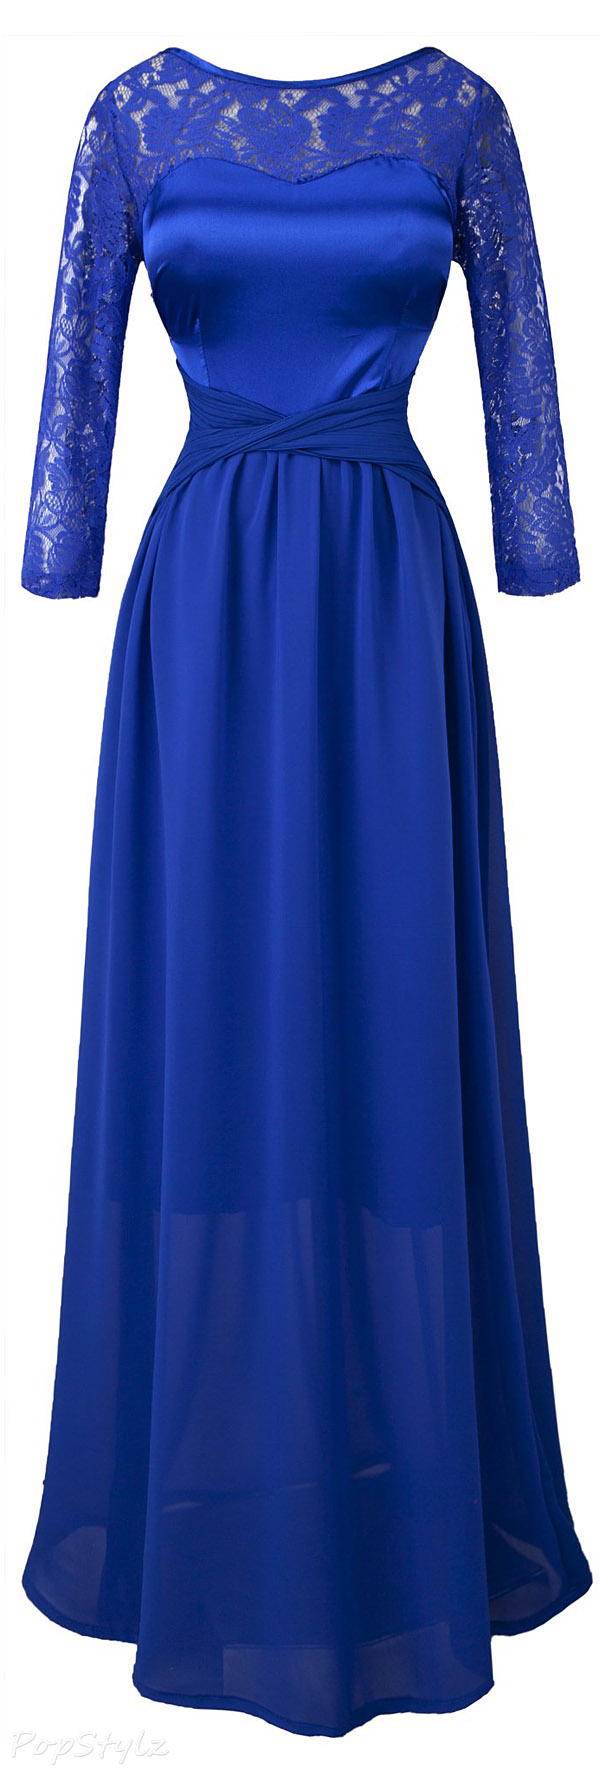 Angel-fashions Round Neck 3/4 Sleeves Floral Lace Gown